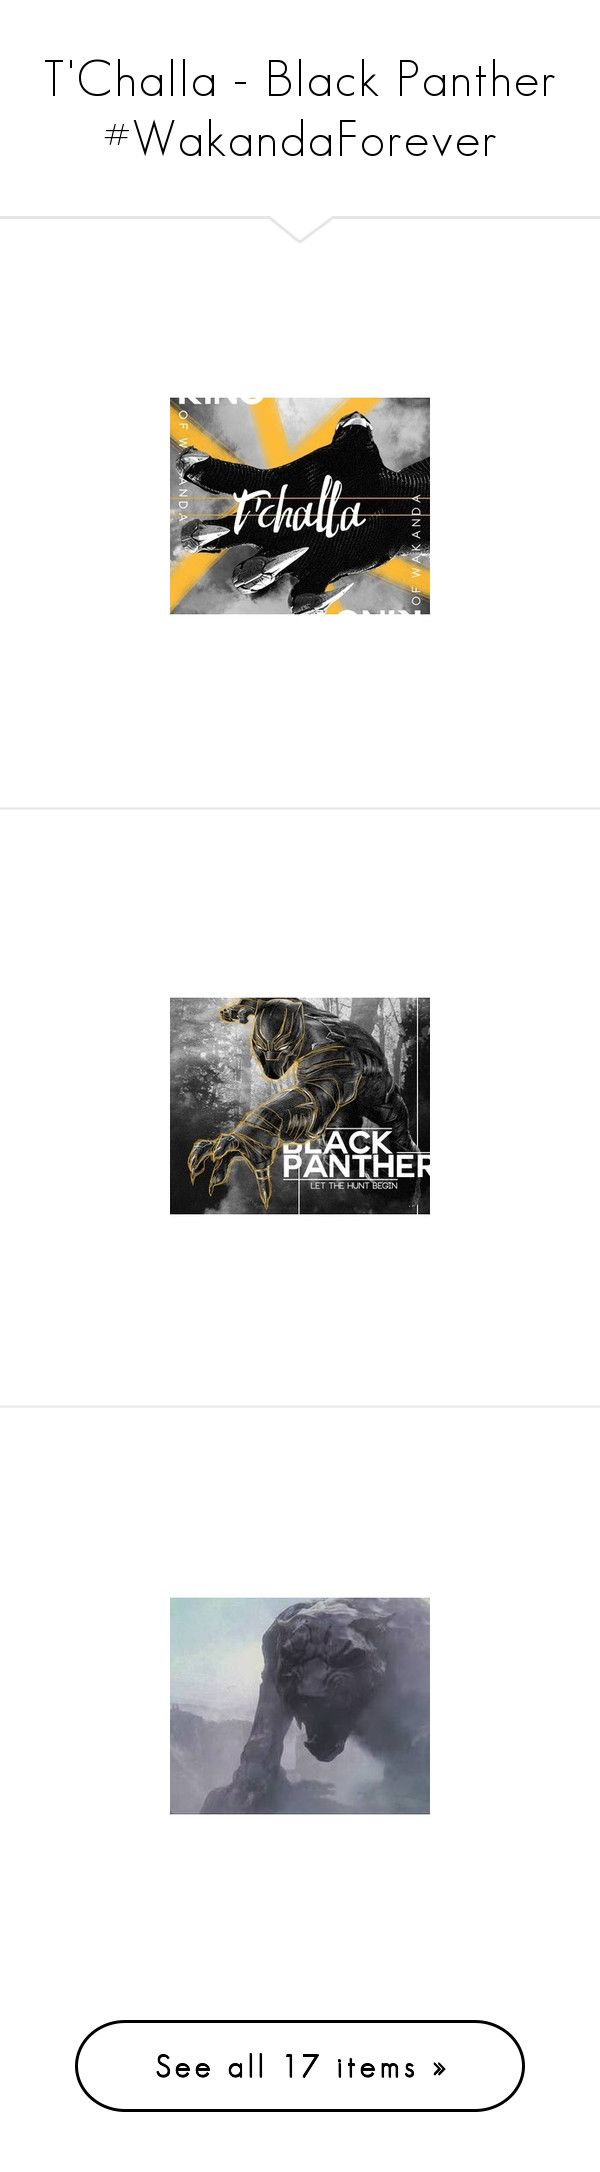 """""""T'Challa - Black Panther #WakandaForever"""" by argboo on Polyvore featuring marvel, black panther, avengers, comic, marvel black panther, men's fashion, men's clothing, men's outerwear, men's jackets and mens varsity bomber jacket"""